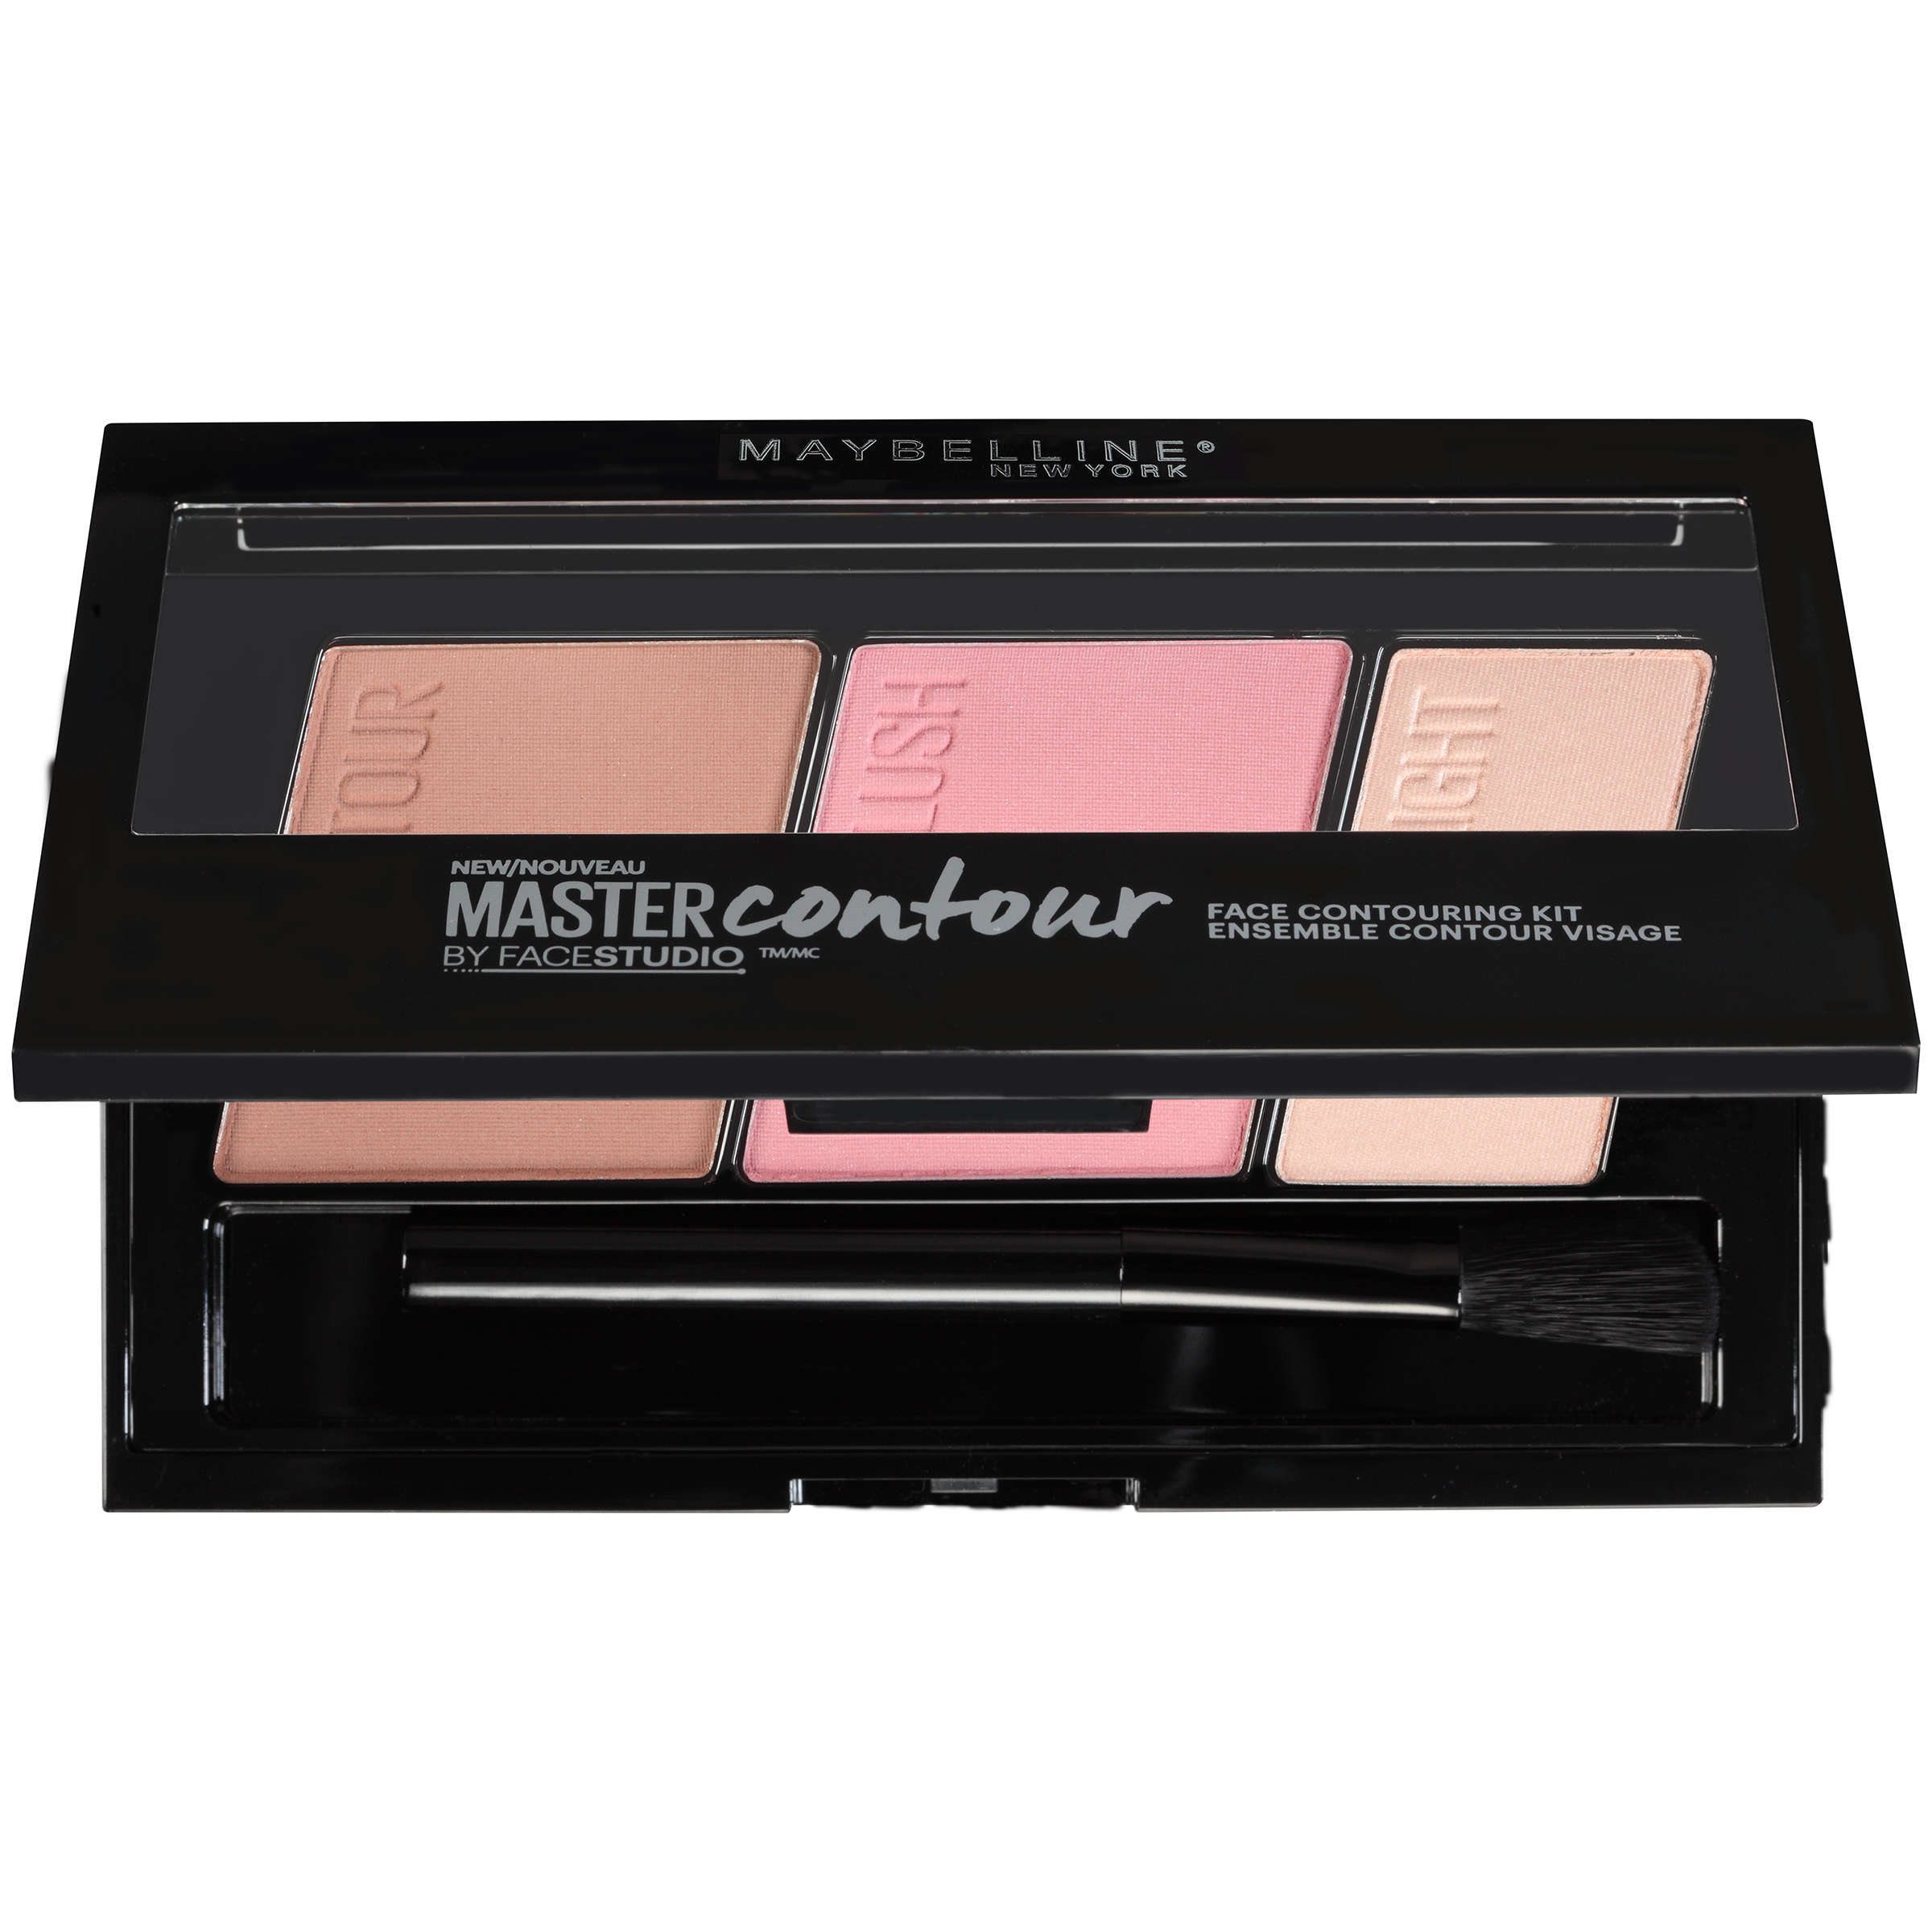 contour makeup kit walmart. maybelline new york facestudio master contour face contouring kit, 0.17 oz - walmart.com makeup kit walmart e